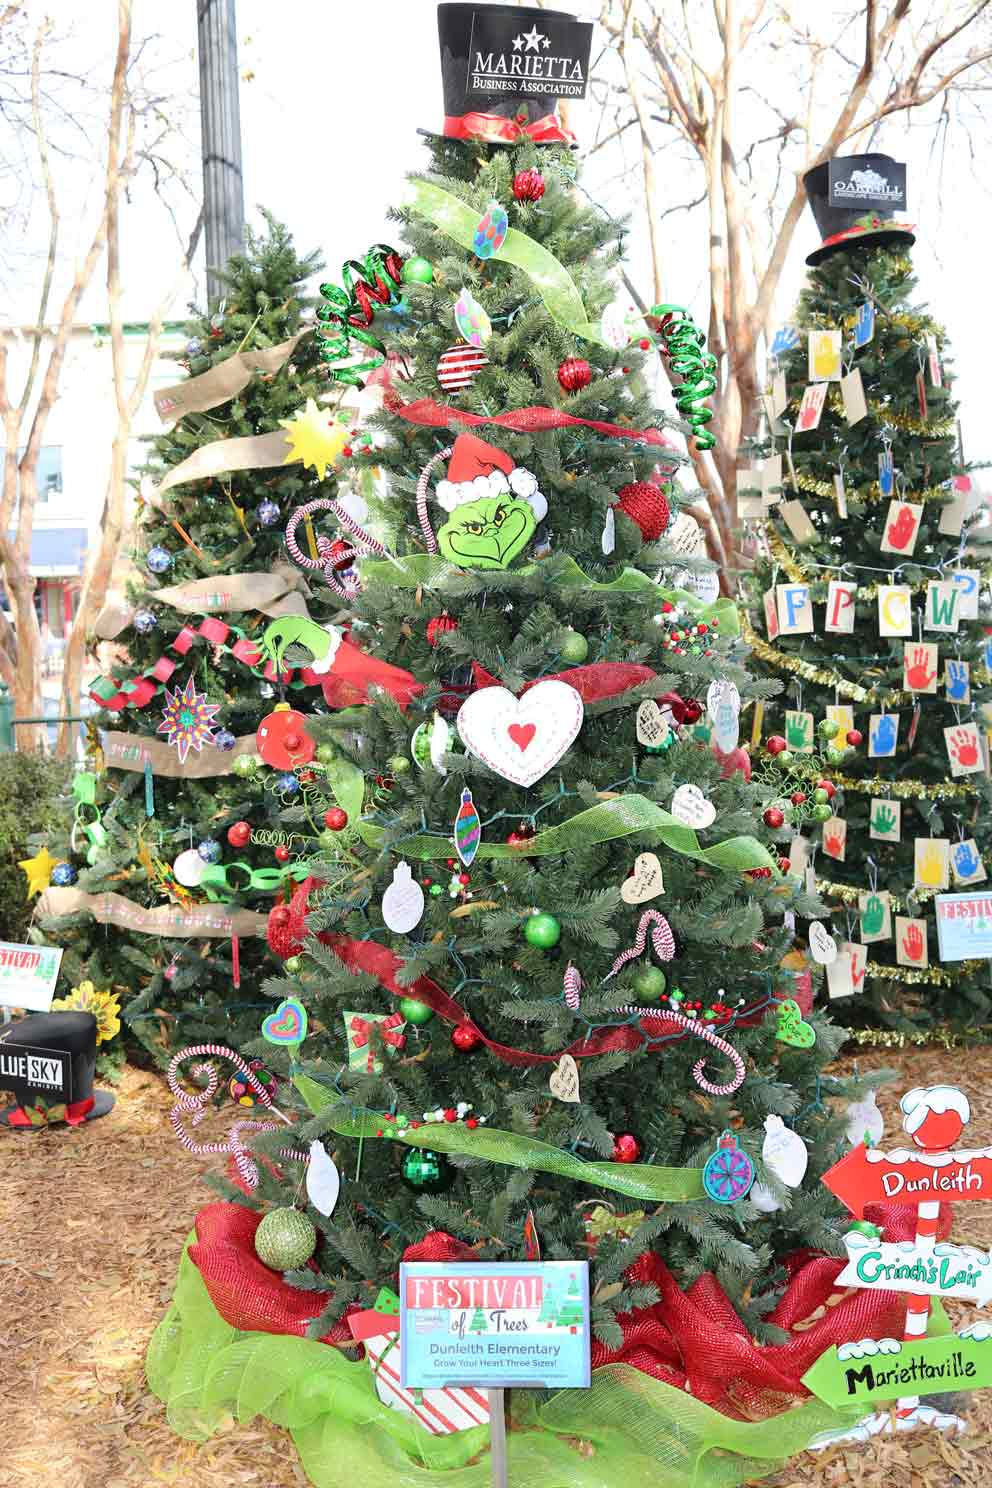 Dunleith Elementary    Created by:  Dunleith Dolphins   Theme:  Grow Your Heart Three Sizes!   Inspiration:  Spreading kindness is a cinch so don't be a Grinch! Please look carefully around our tree! Our Dunleith Dolphins have words of inspiration to help your heart grow three sizes!